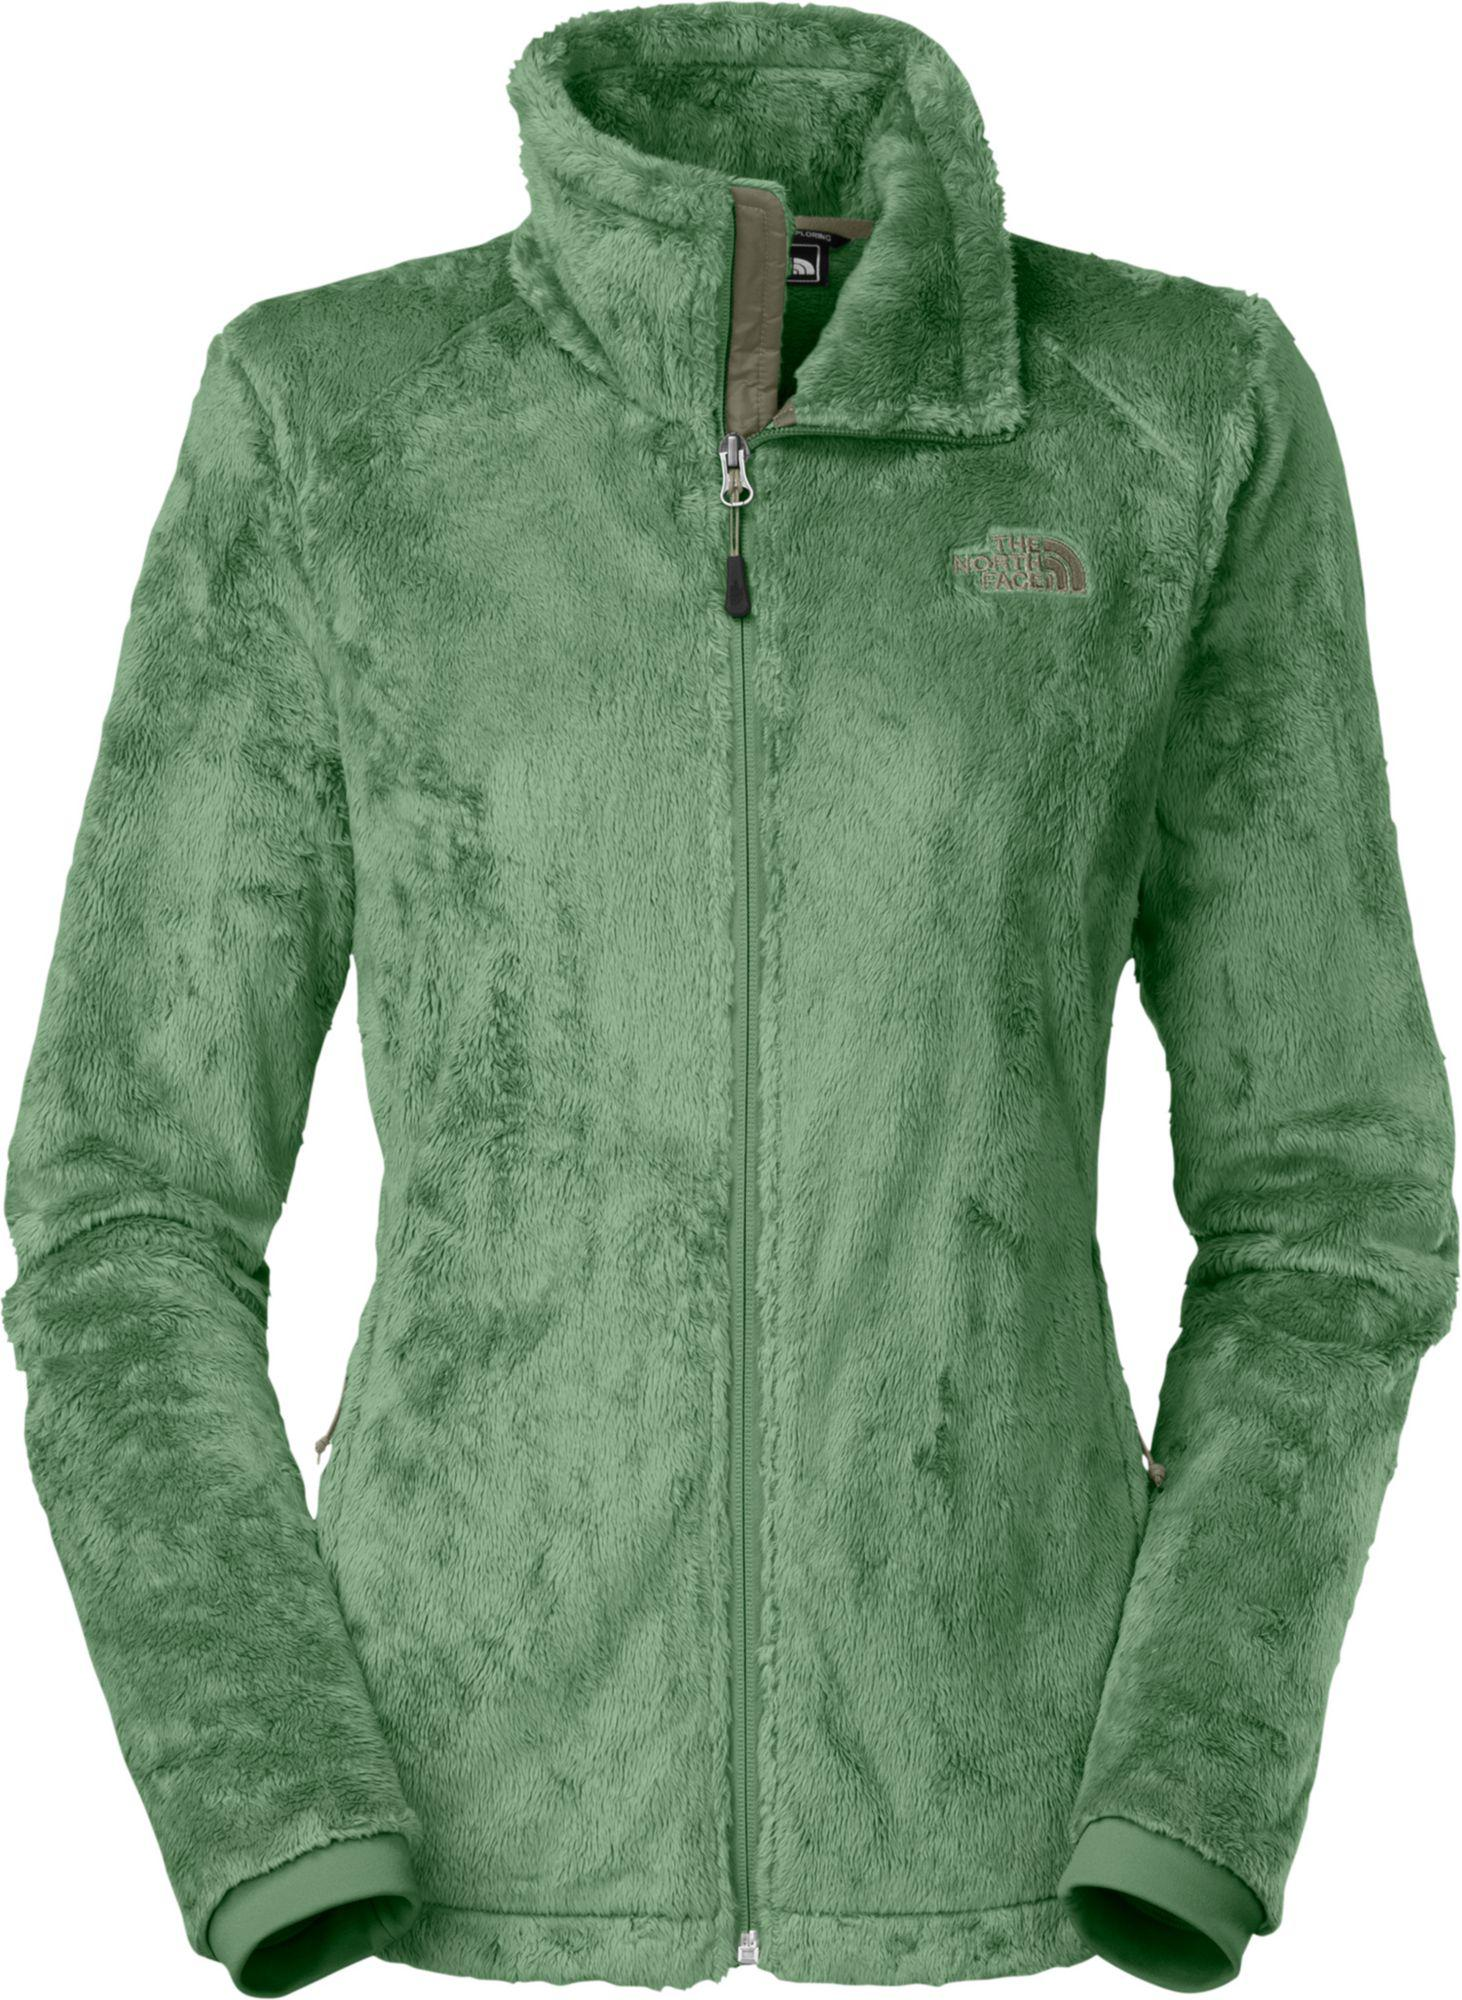 7d153b52c97e Lyst - The North Face Osito 2 Fleece Jacket in Green